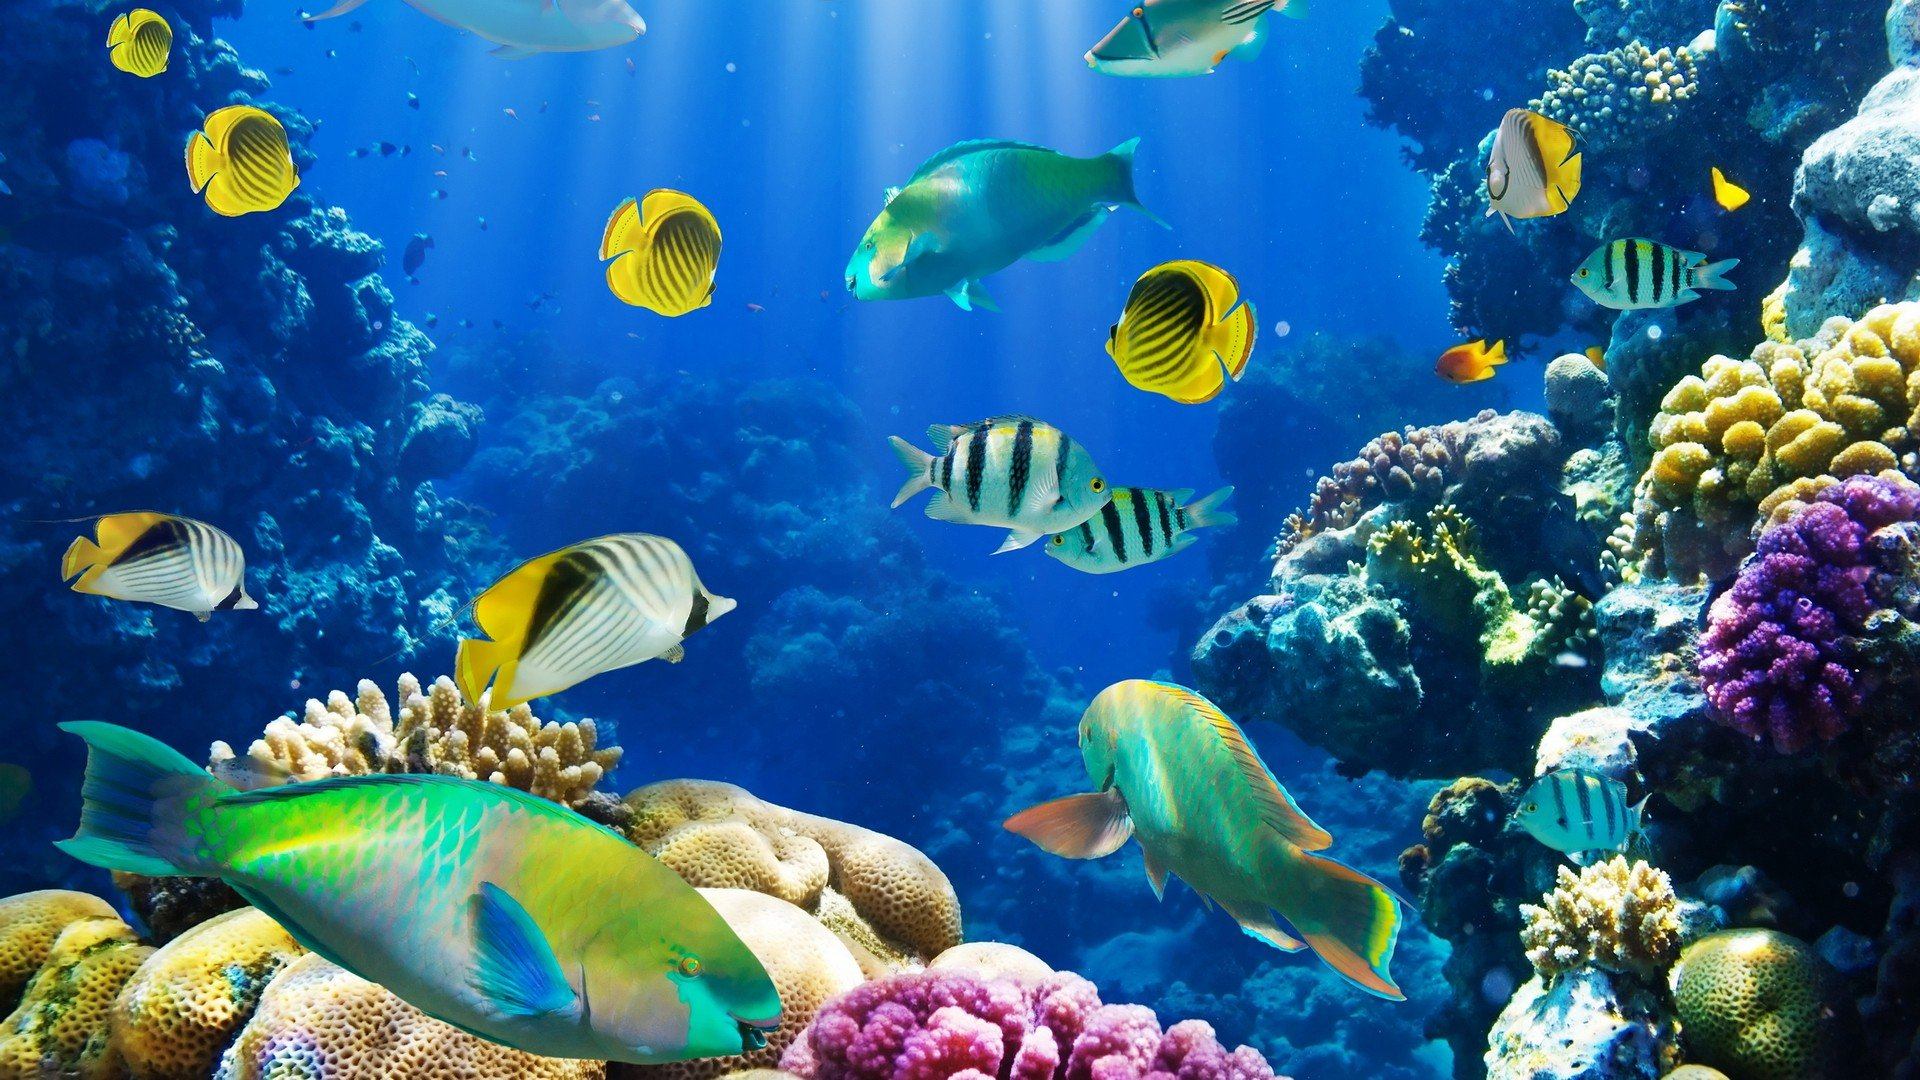 Beautiful Fishes In Water Hd Wallpaper